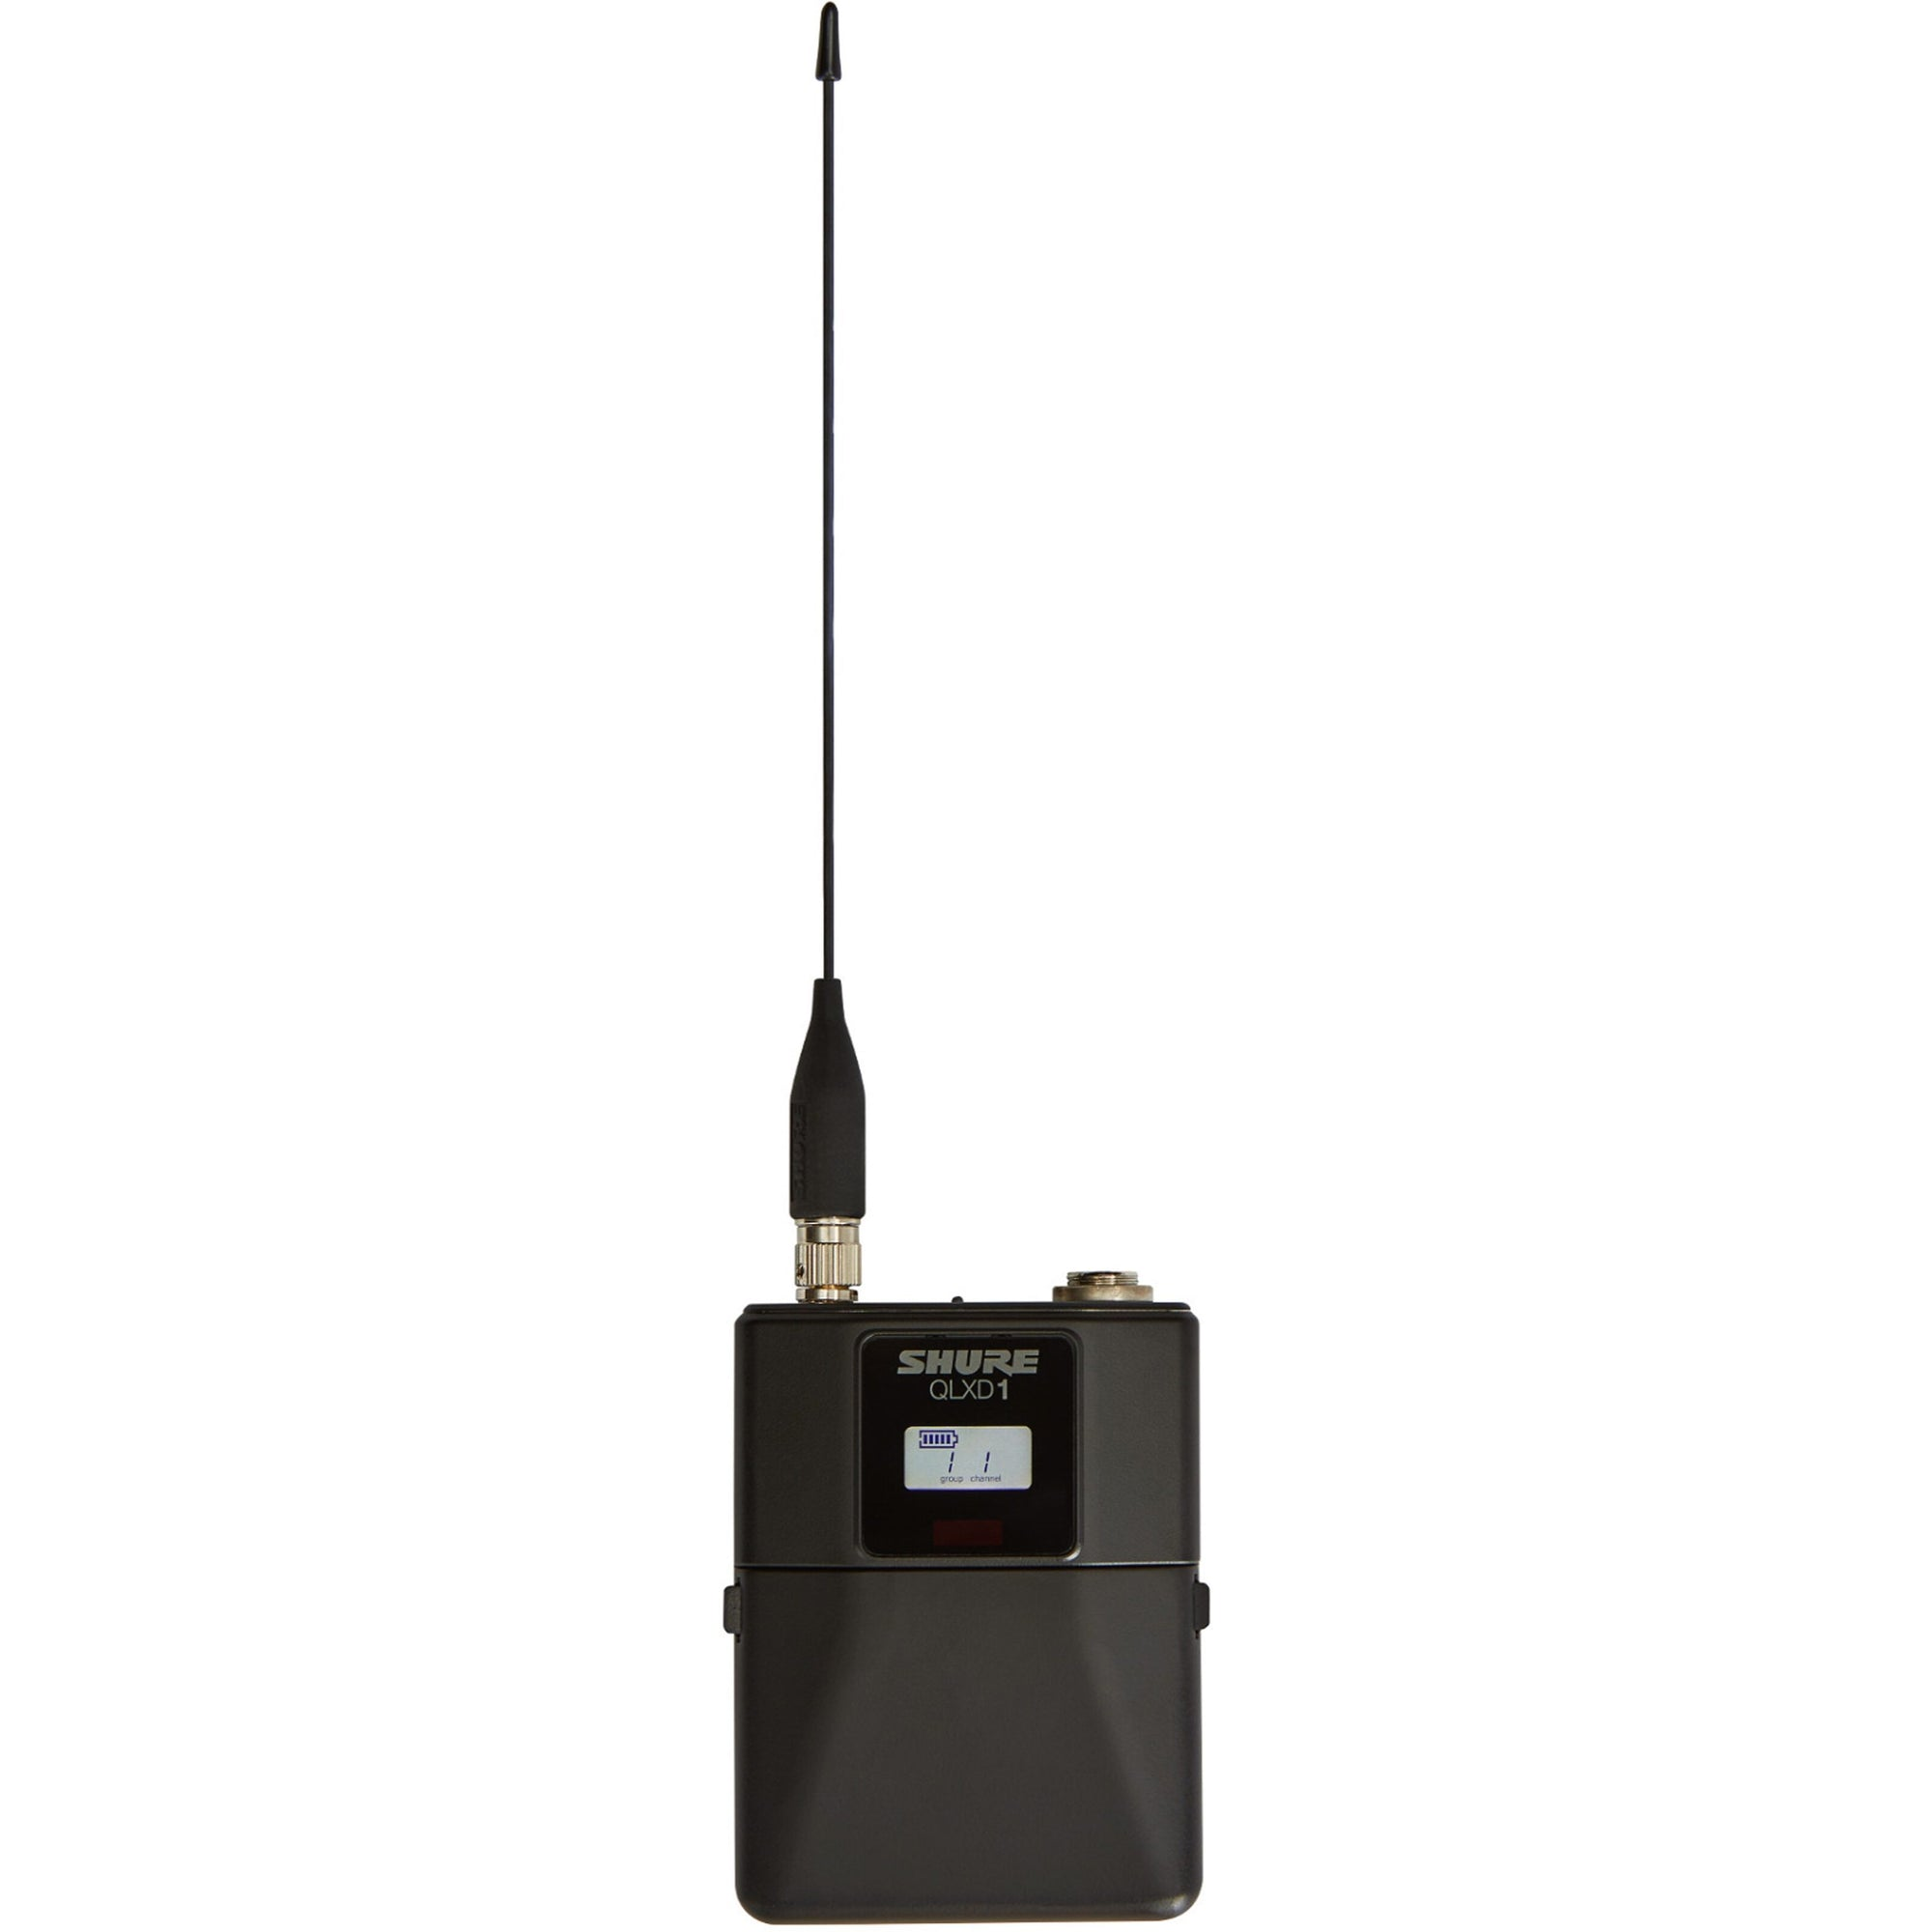 Shure QLXD1484 Wireless System with WL184 Lavalier Microphone, Band V50 (174 - 216 MHz)